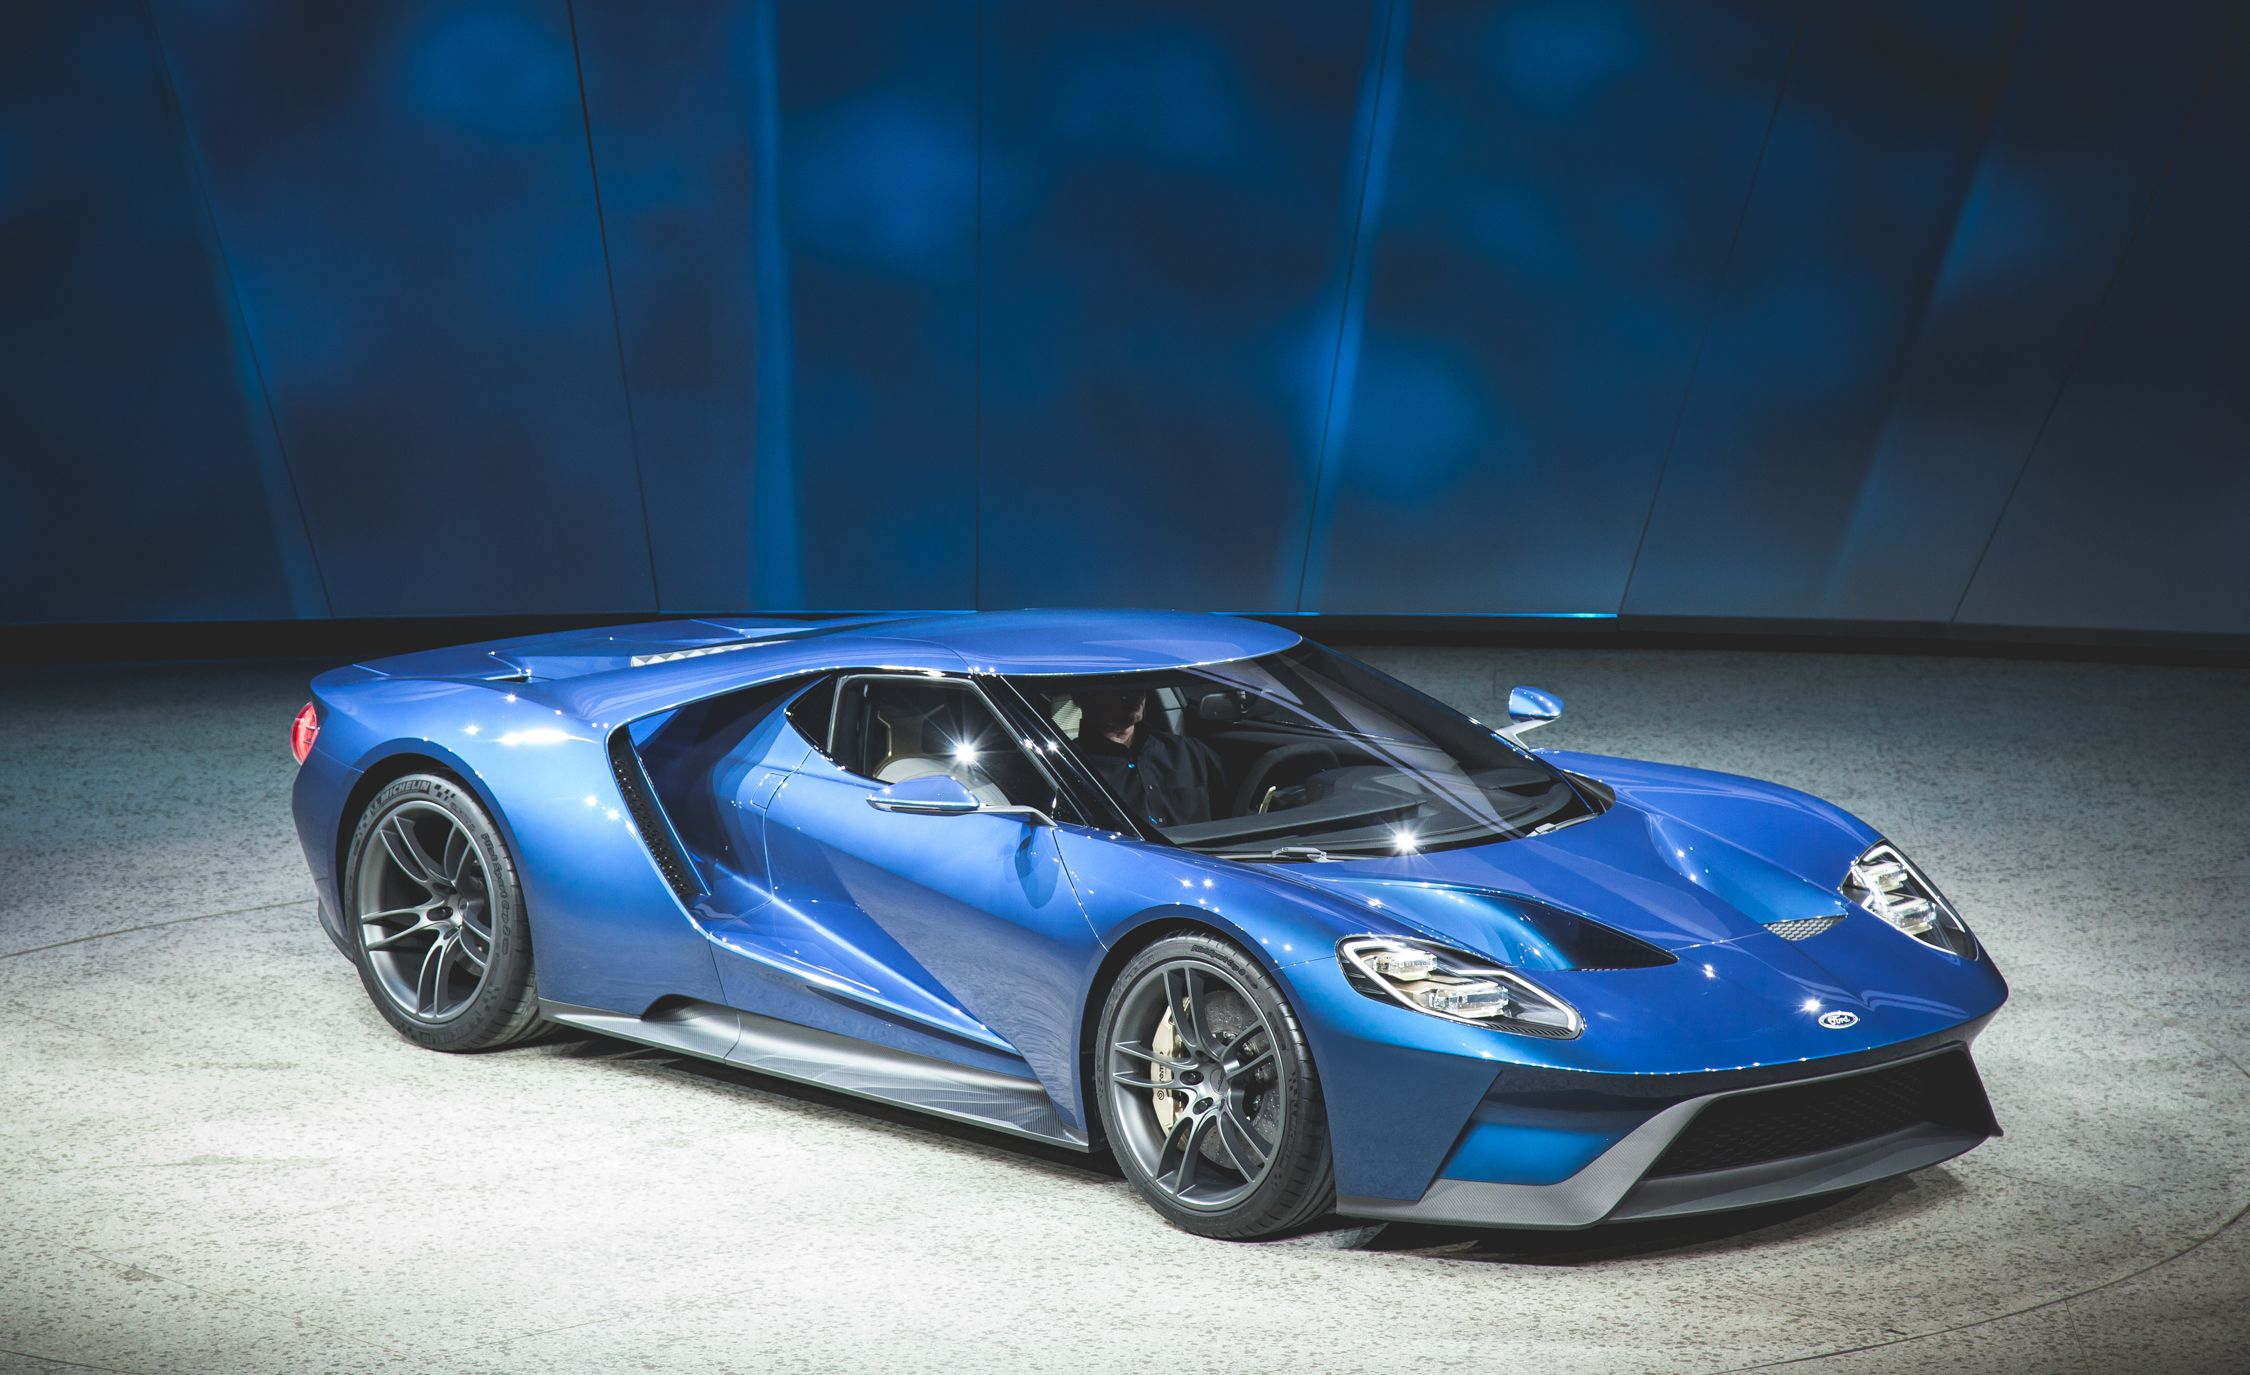 2017 Ford GT Cars